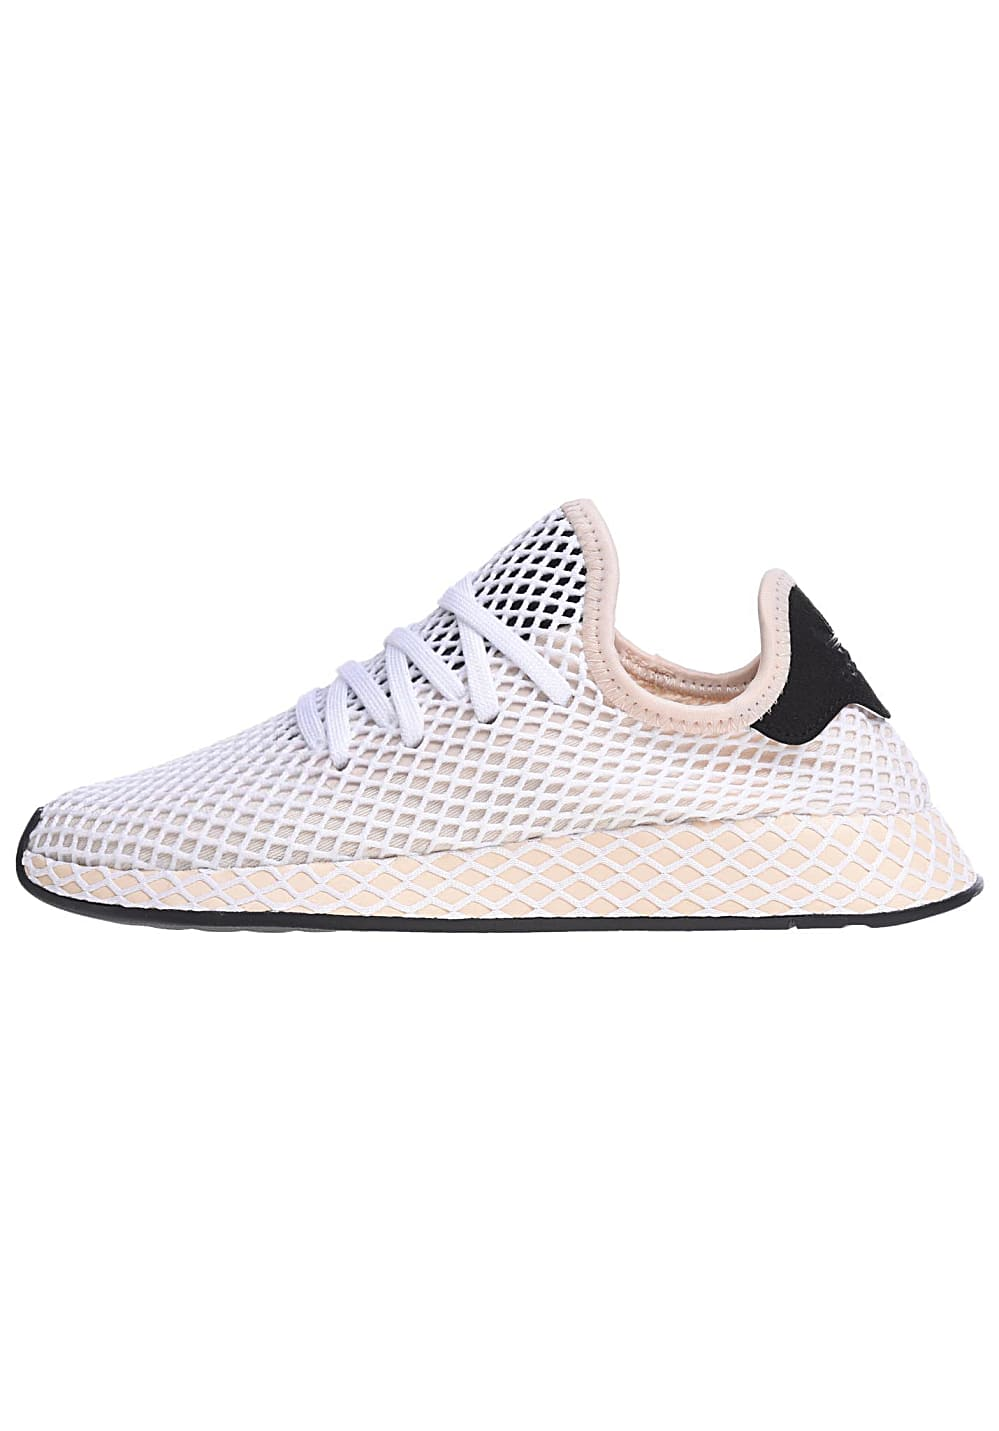 0eafcdda563 ADIDAS ORIGINALS Deerupt Runner - Sneakers for Women - White ...